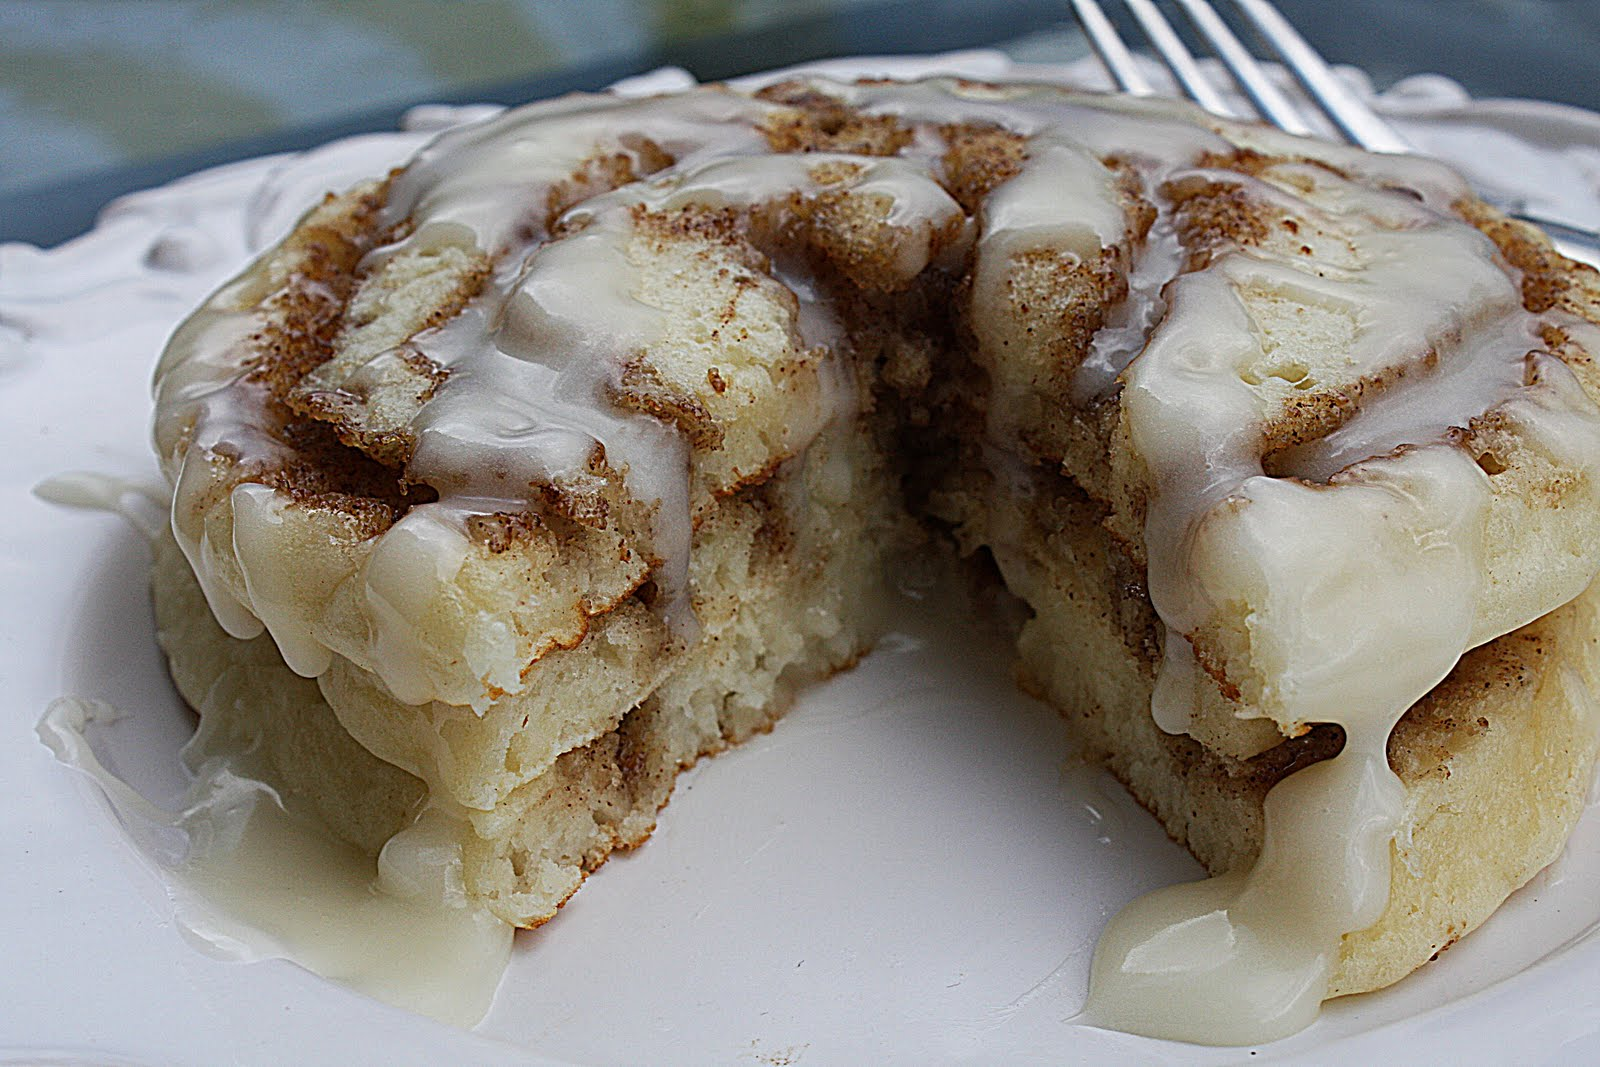 Now, back to these fabulous Cinnamon Roll Pancakes.